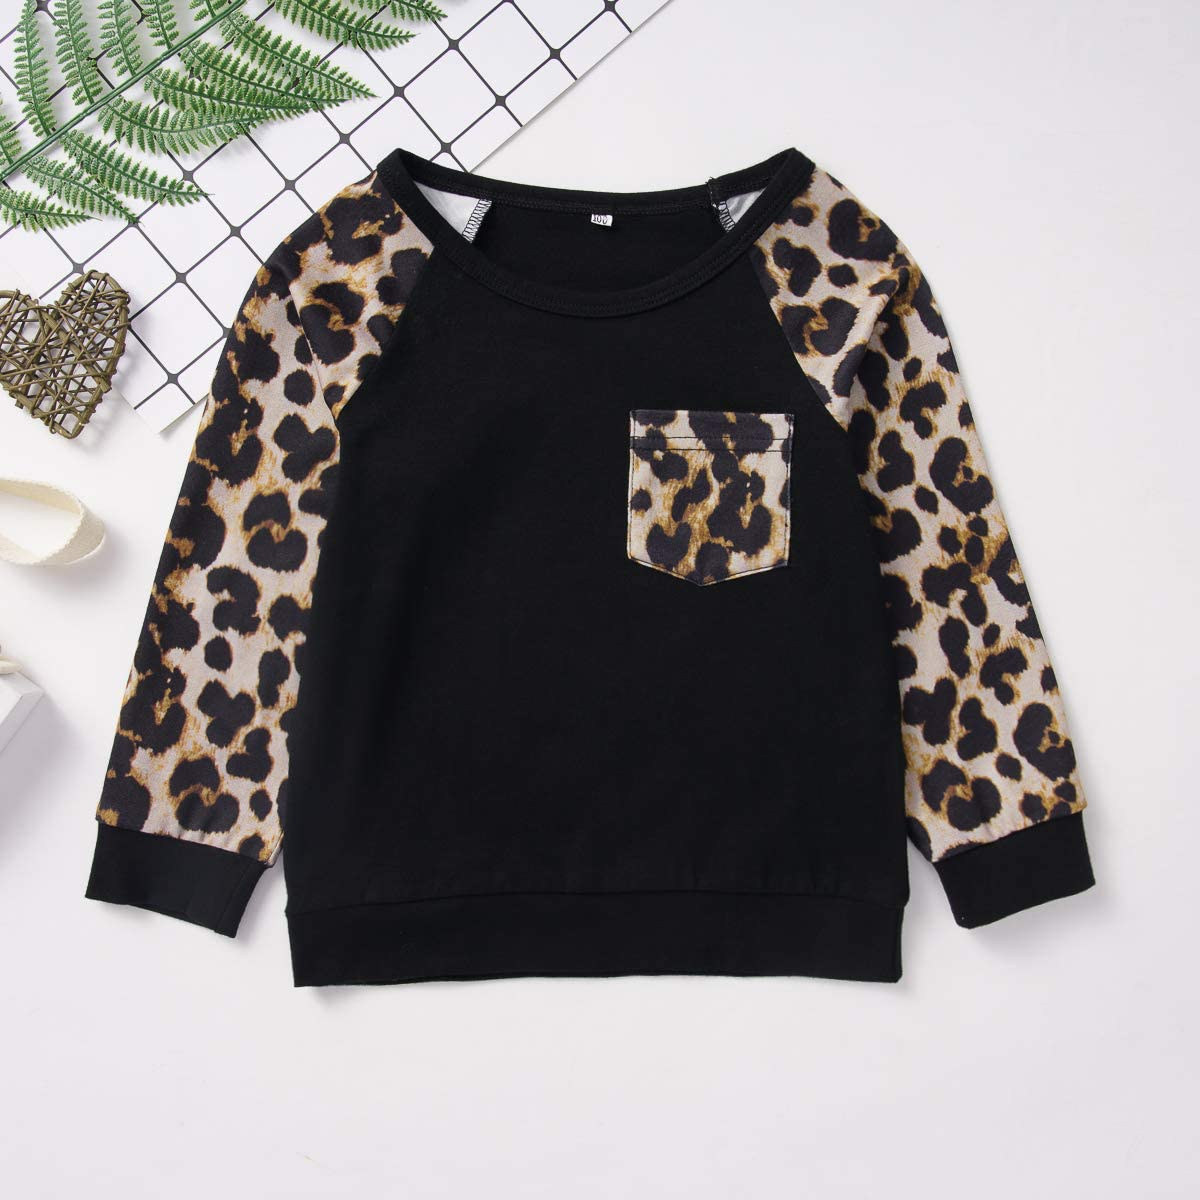 YOUNGER STAR Toddler Baby Girls Boys Leopard Print Sweatshirt Outfit Splicing Casual Pullover Shirt Fall Winter Clothes 1-5 T